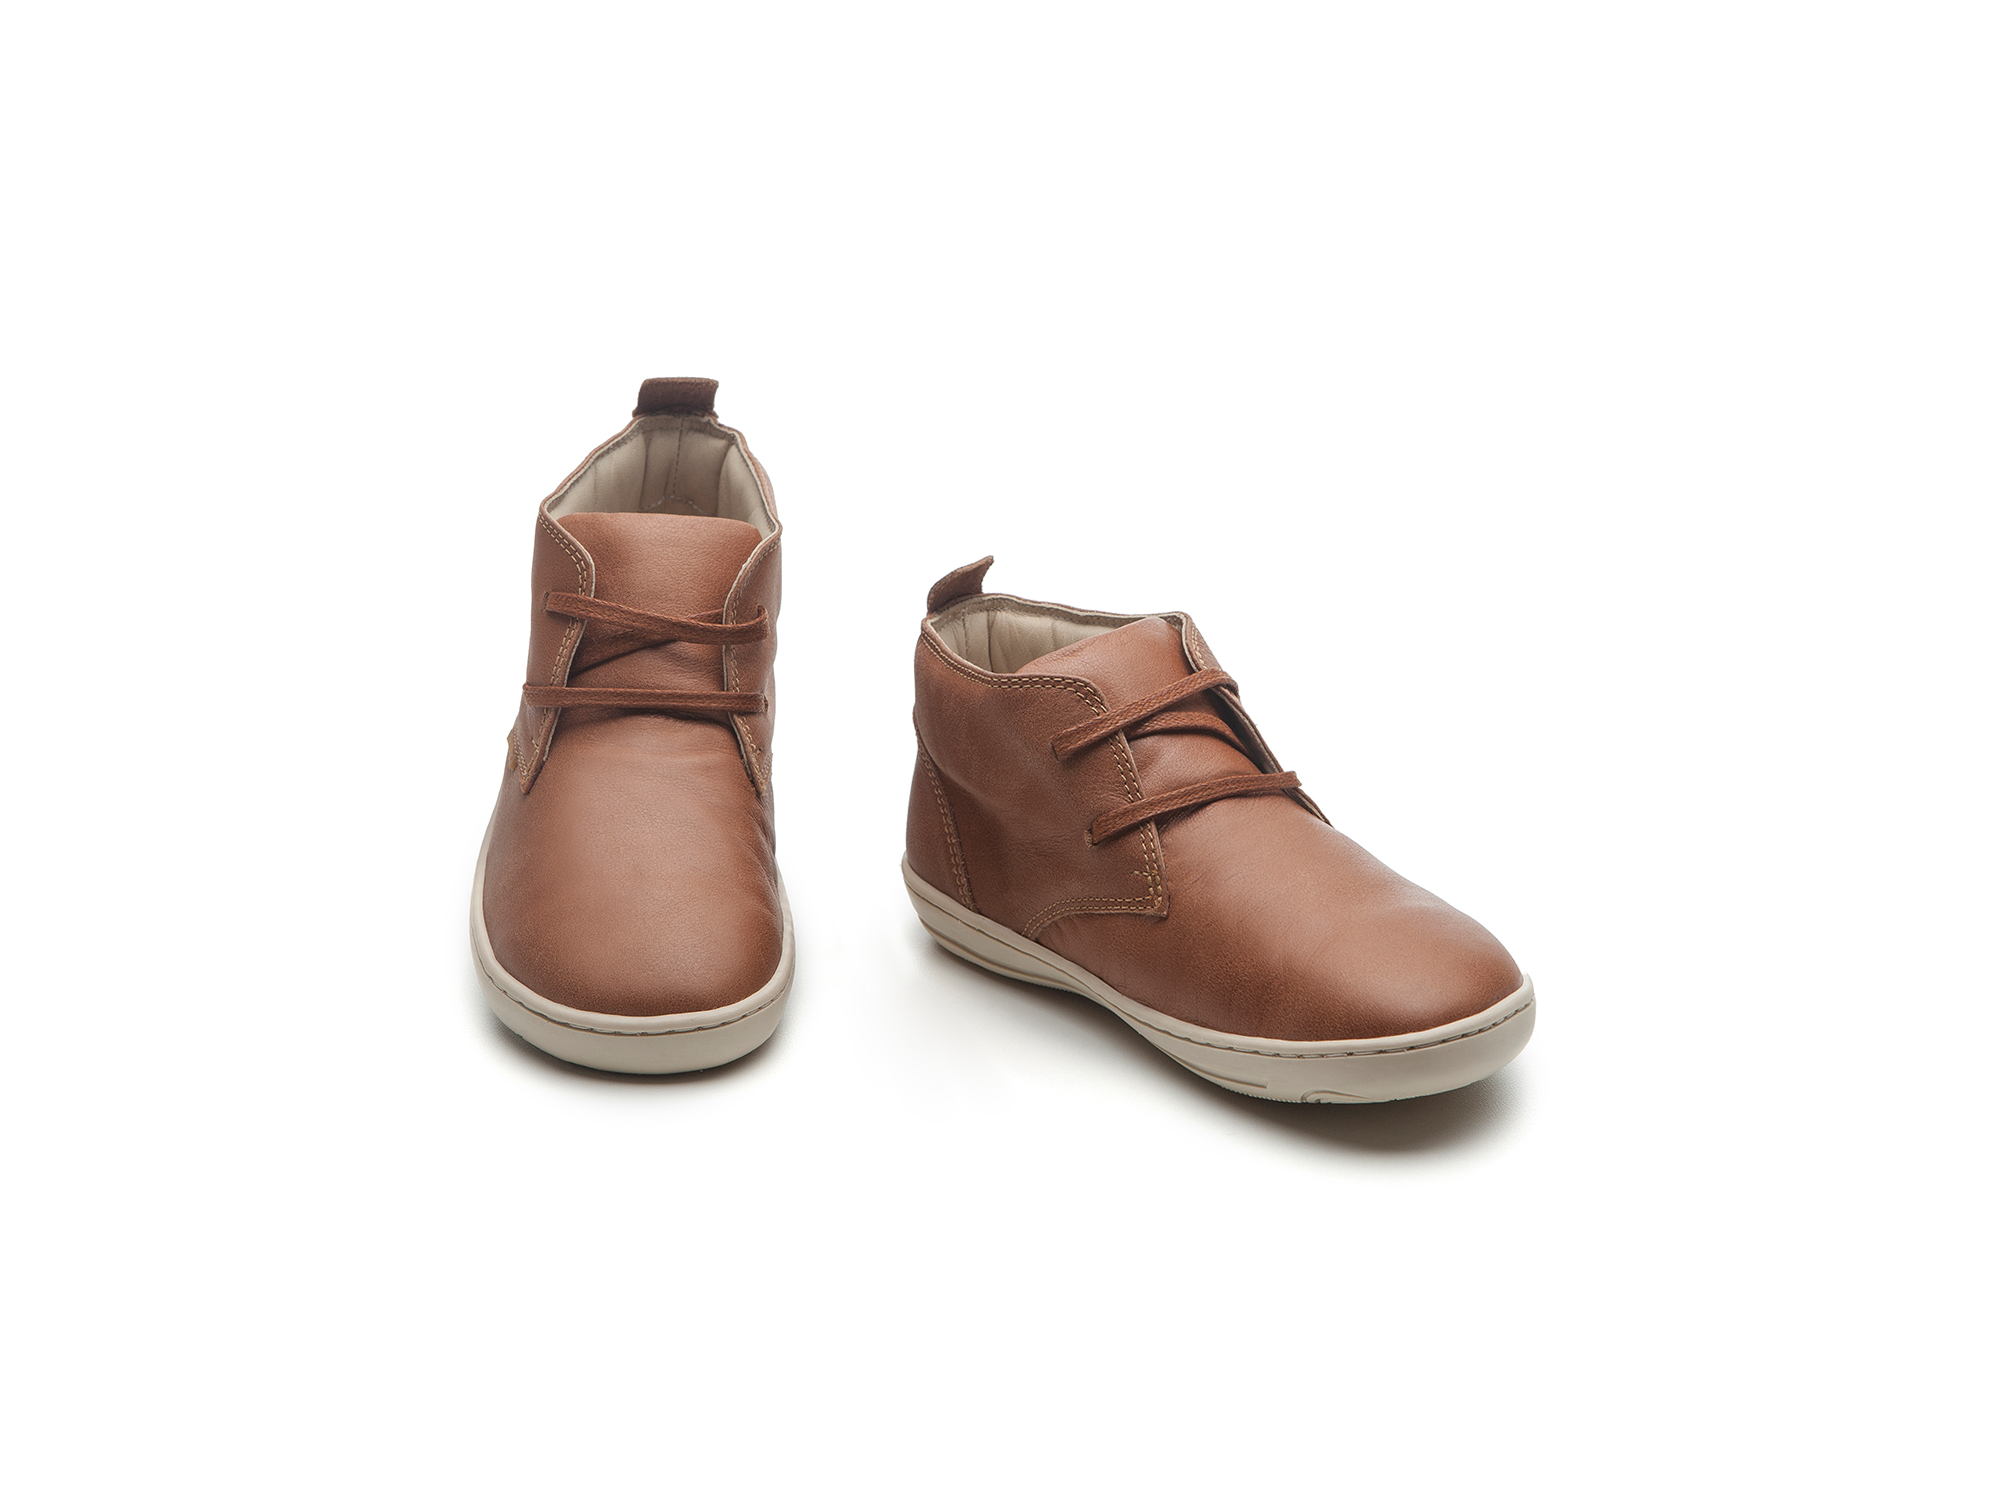 Bota Rambler Whisky  Junior 4 à 8 anos - 1